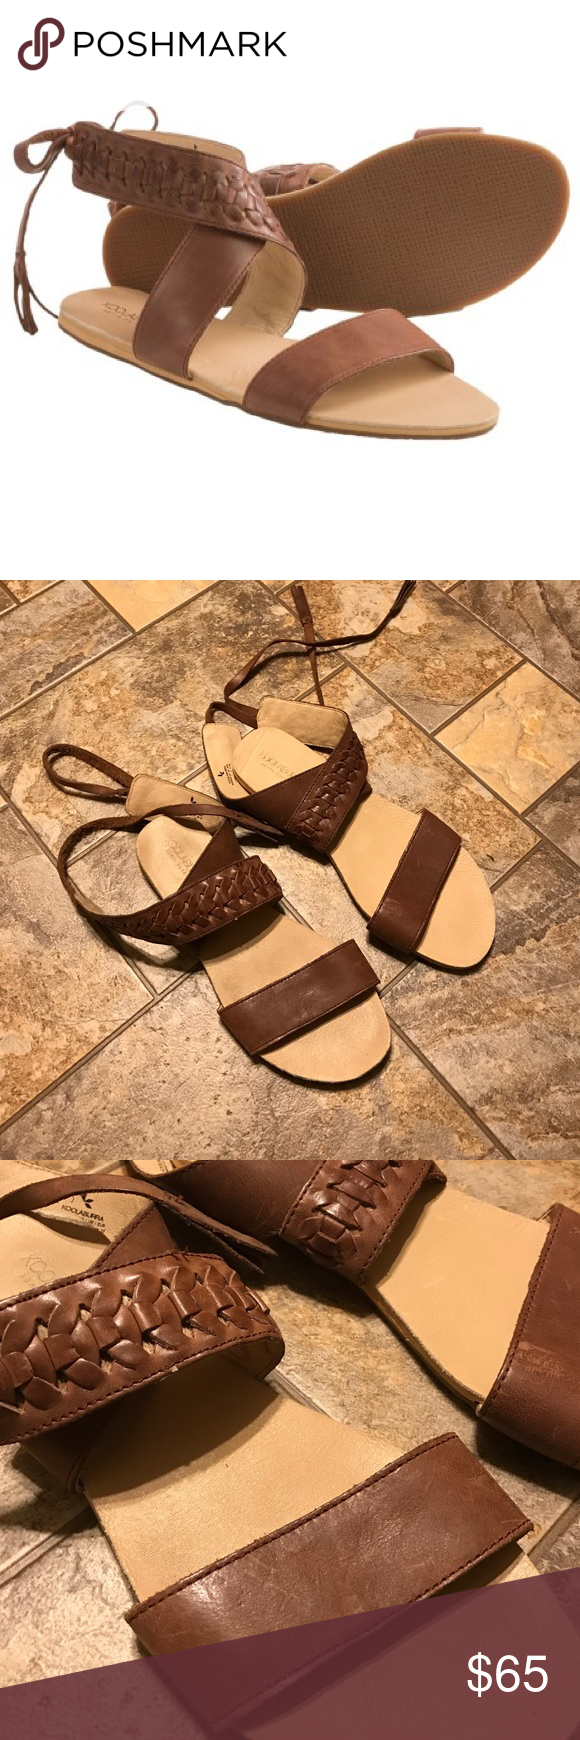 0f48c561818 Kookaburra leather sandals! Urban Outfitters! Gorgeous brown leather ...